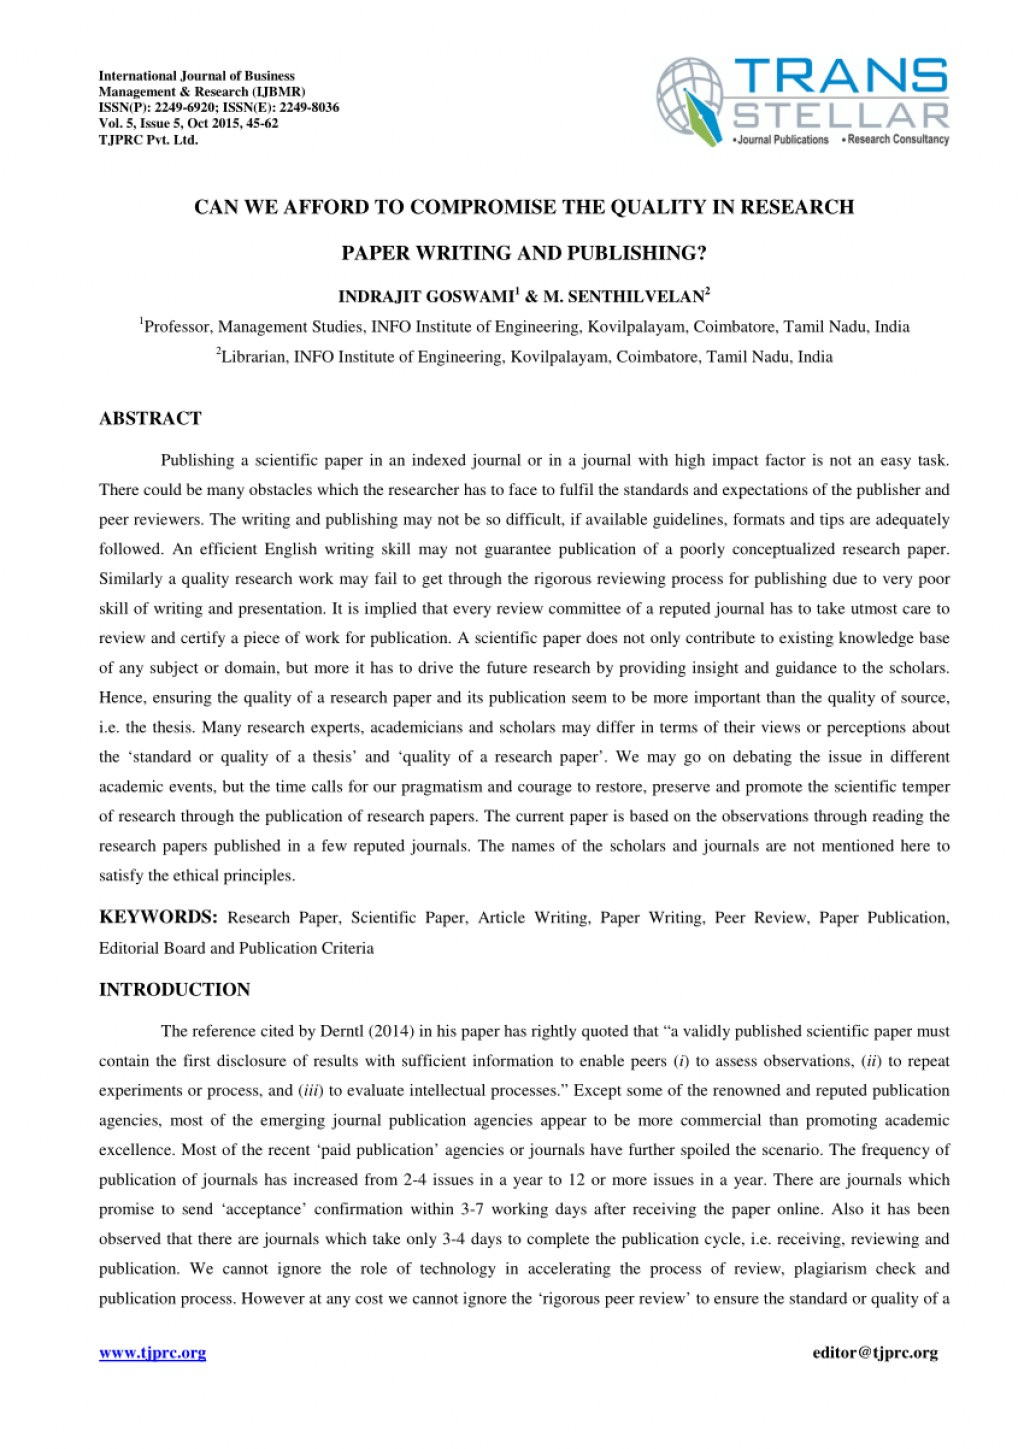 003 Largepreview How To Publish Research Paper Without Striking A Professor Large